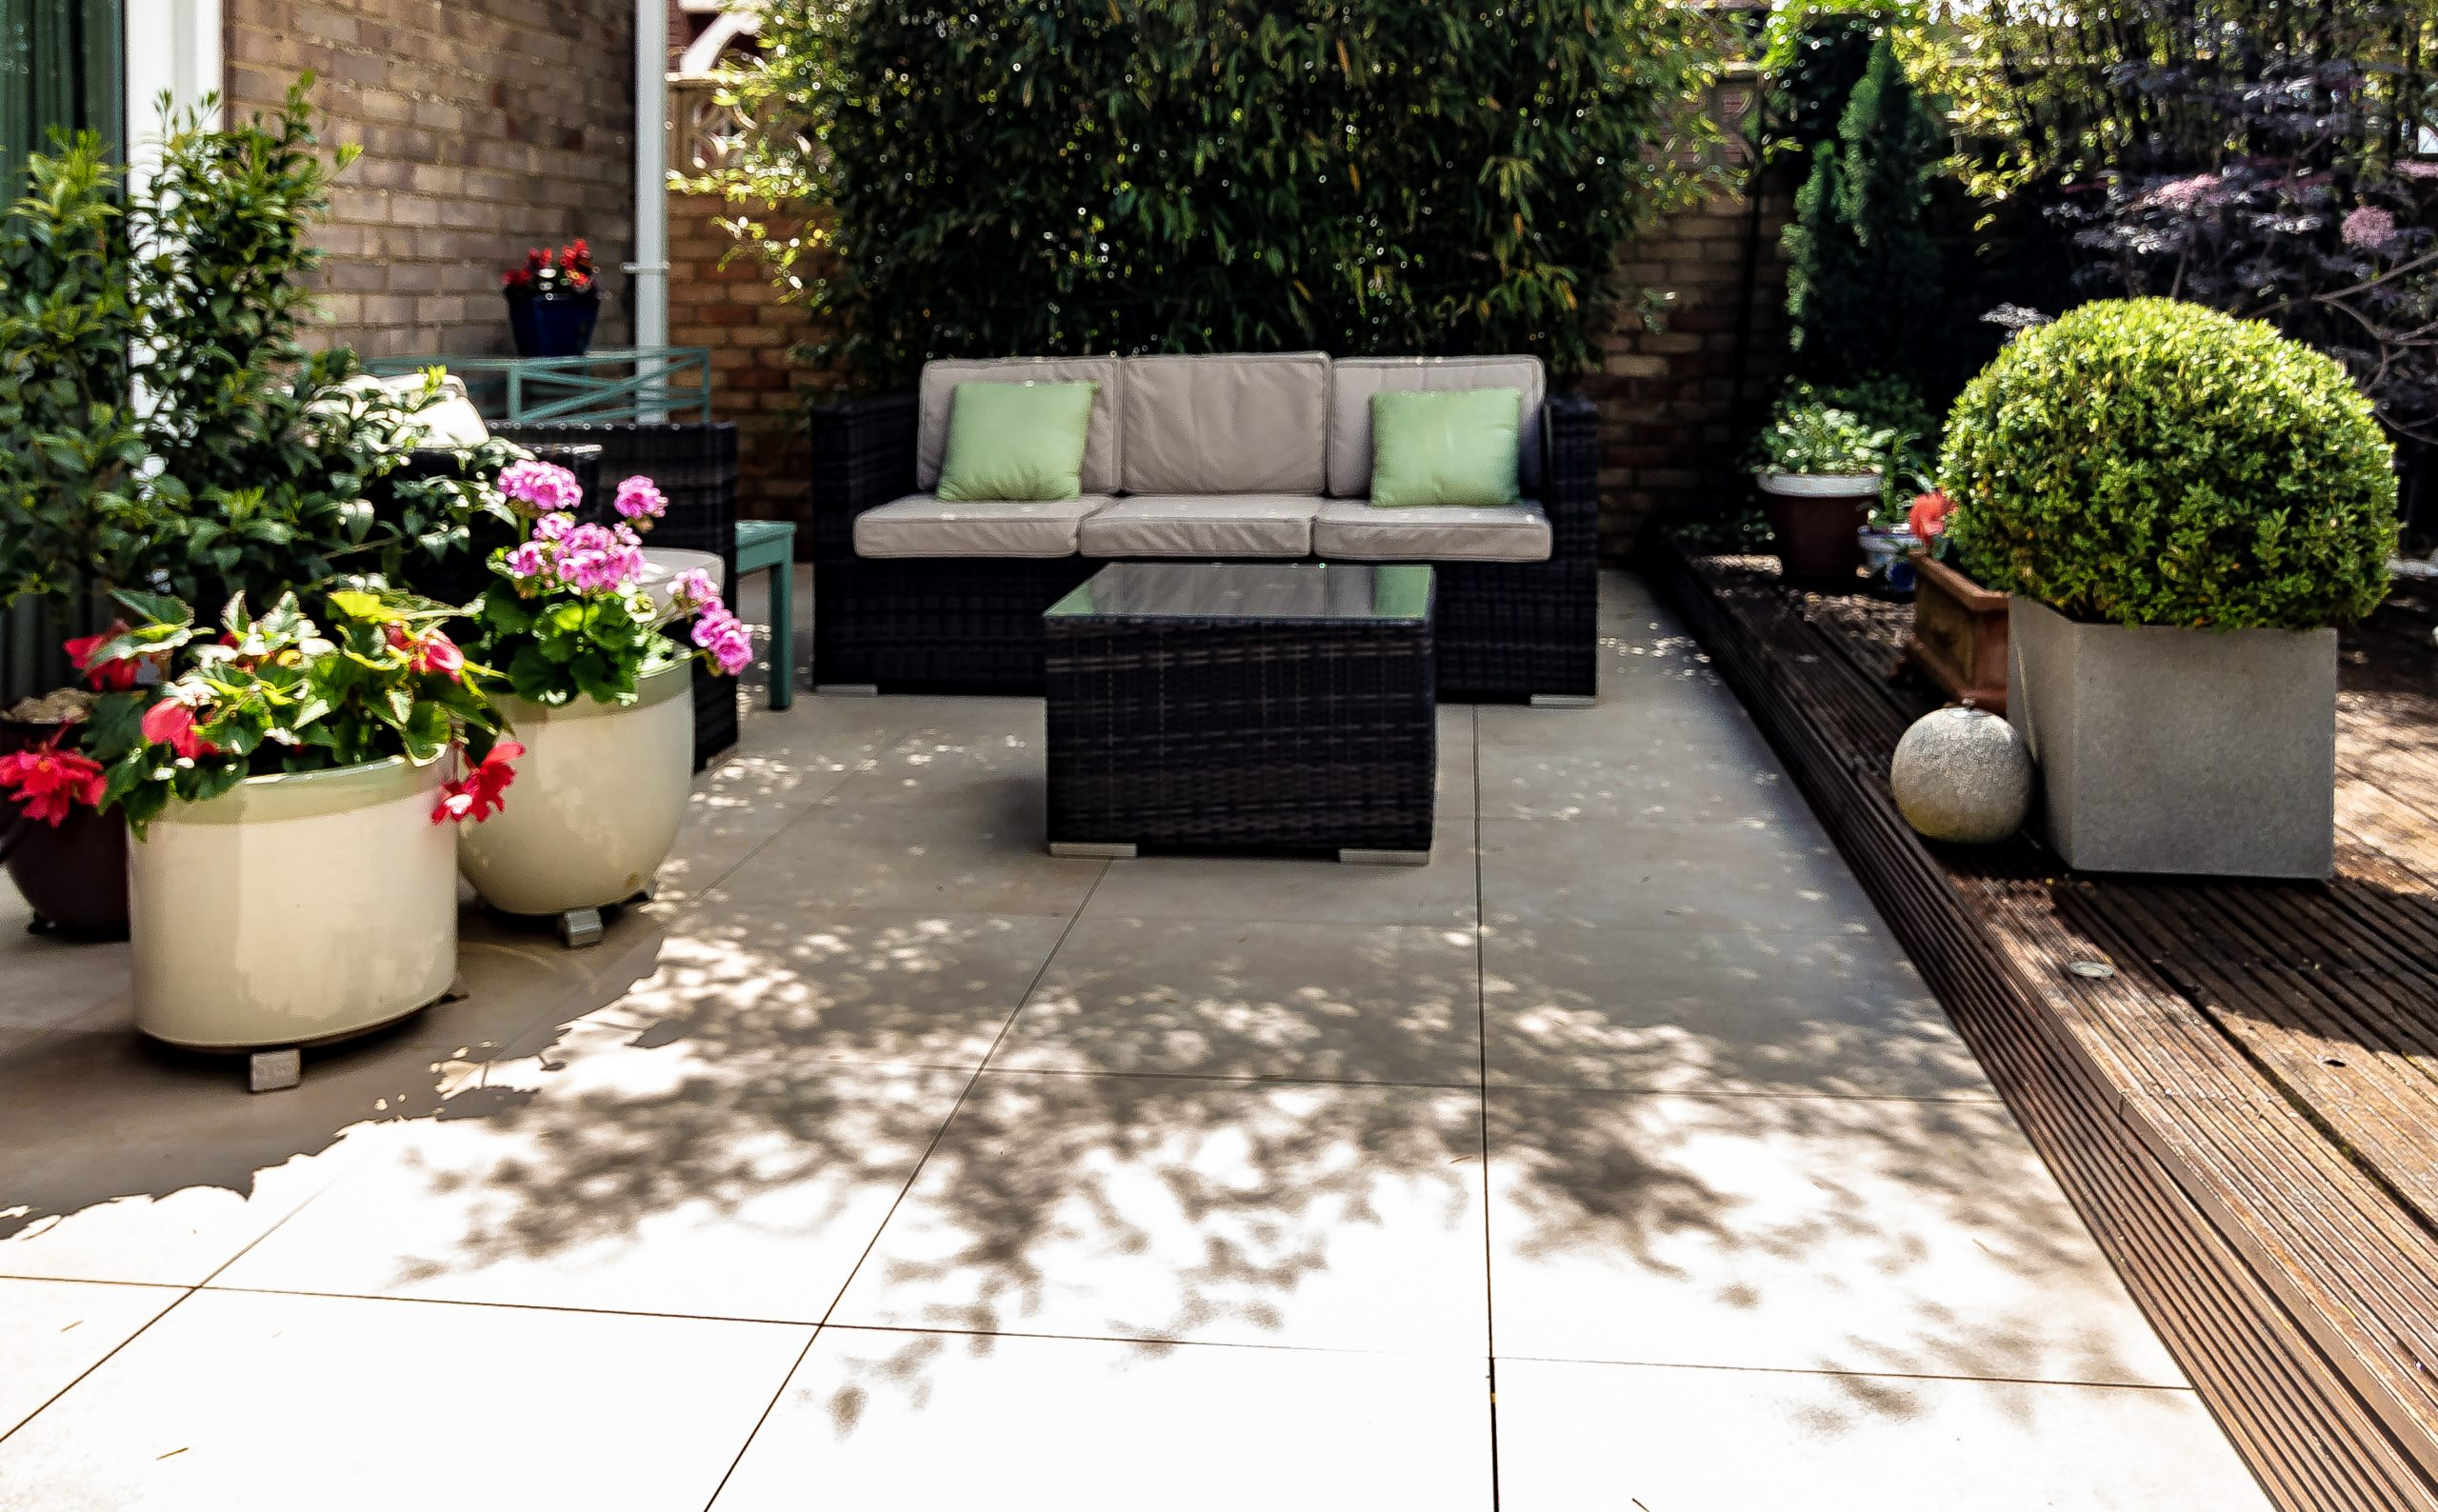 architectural feature patio with pedestals